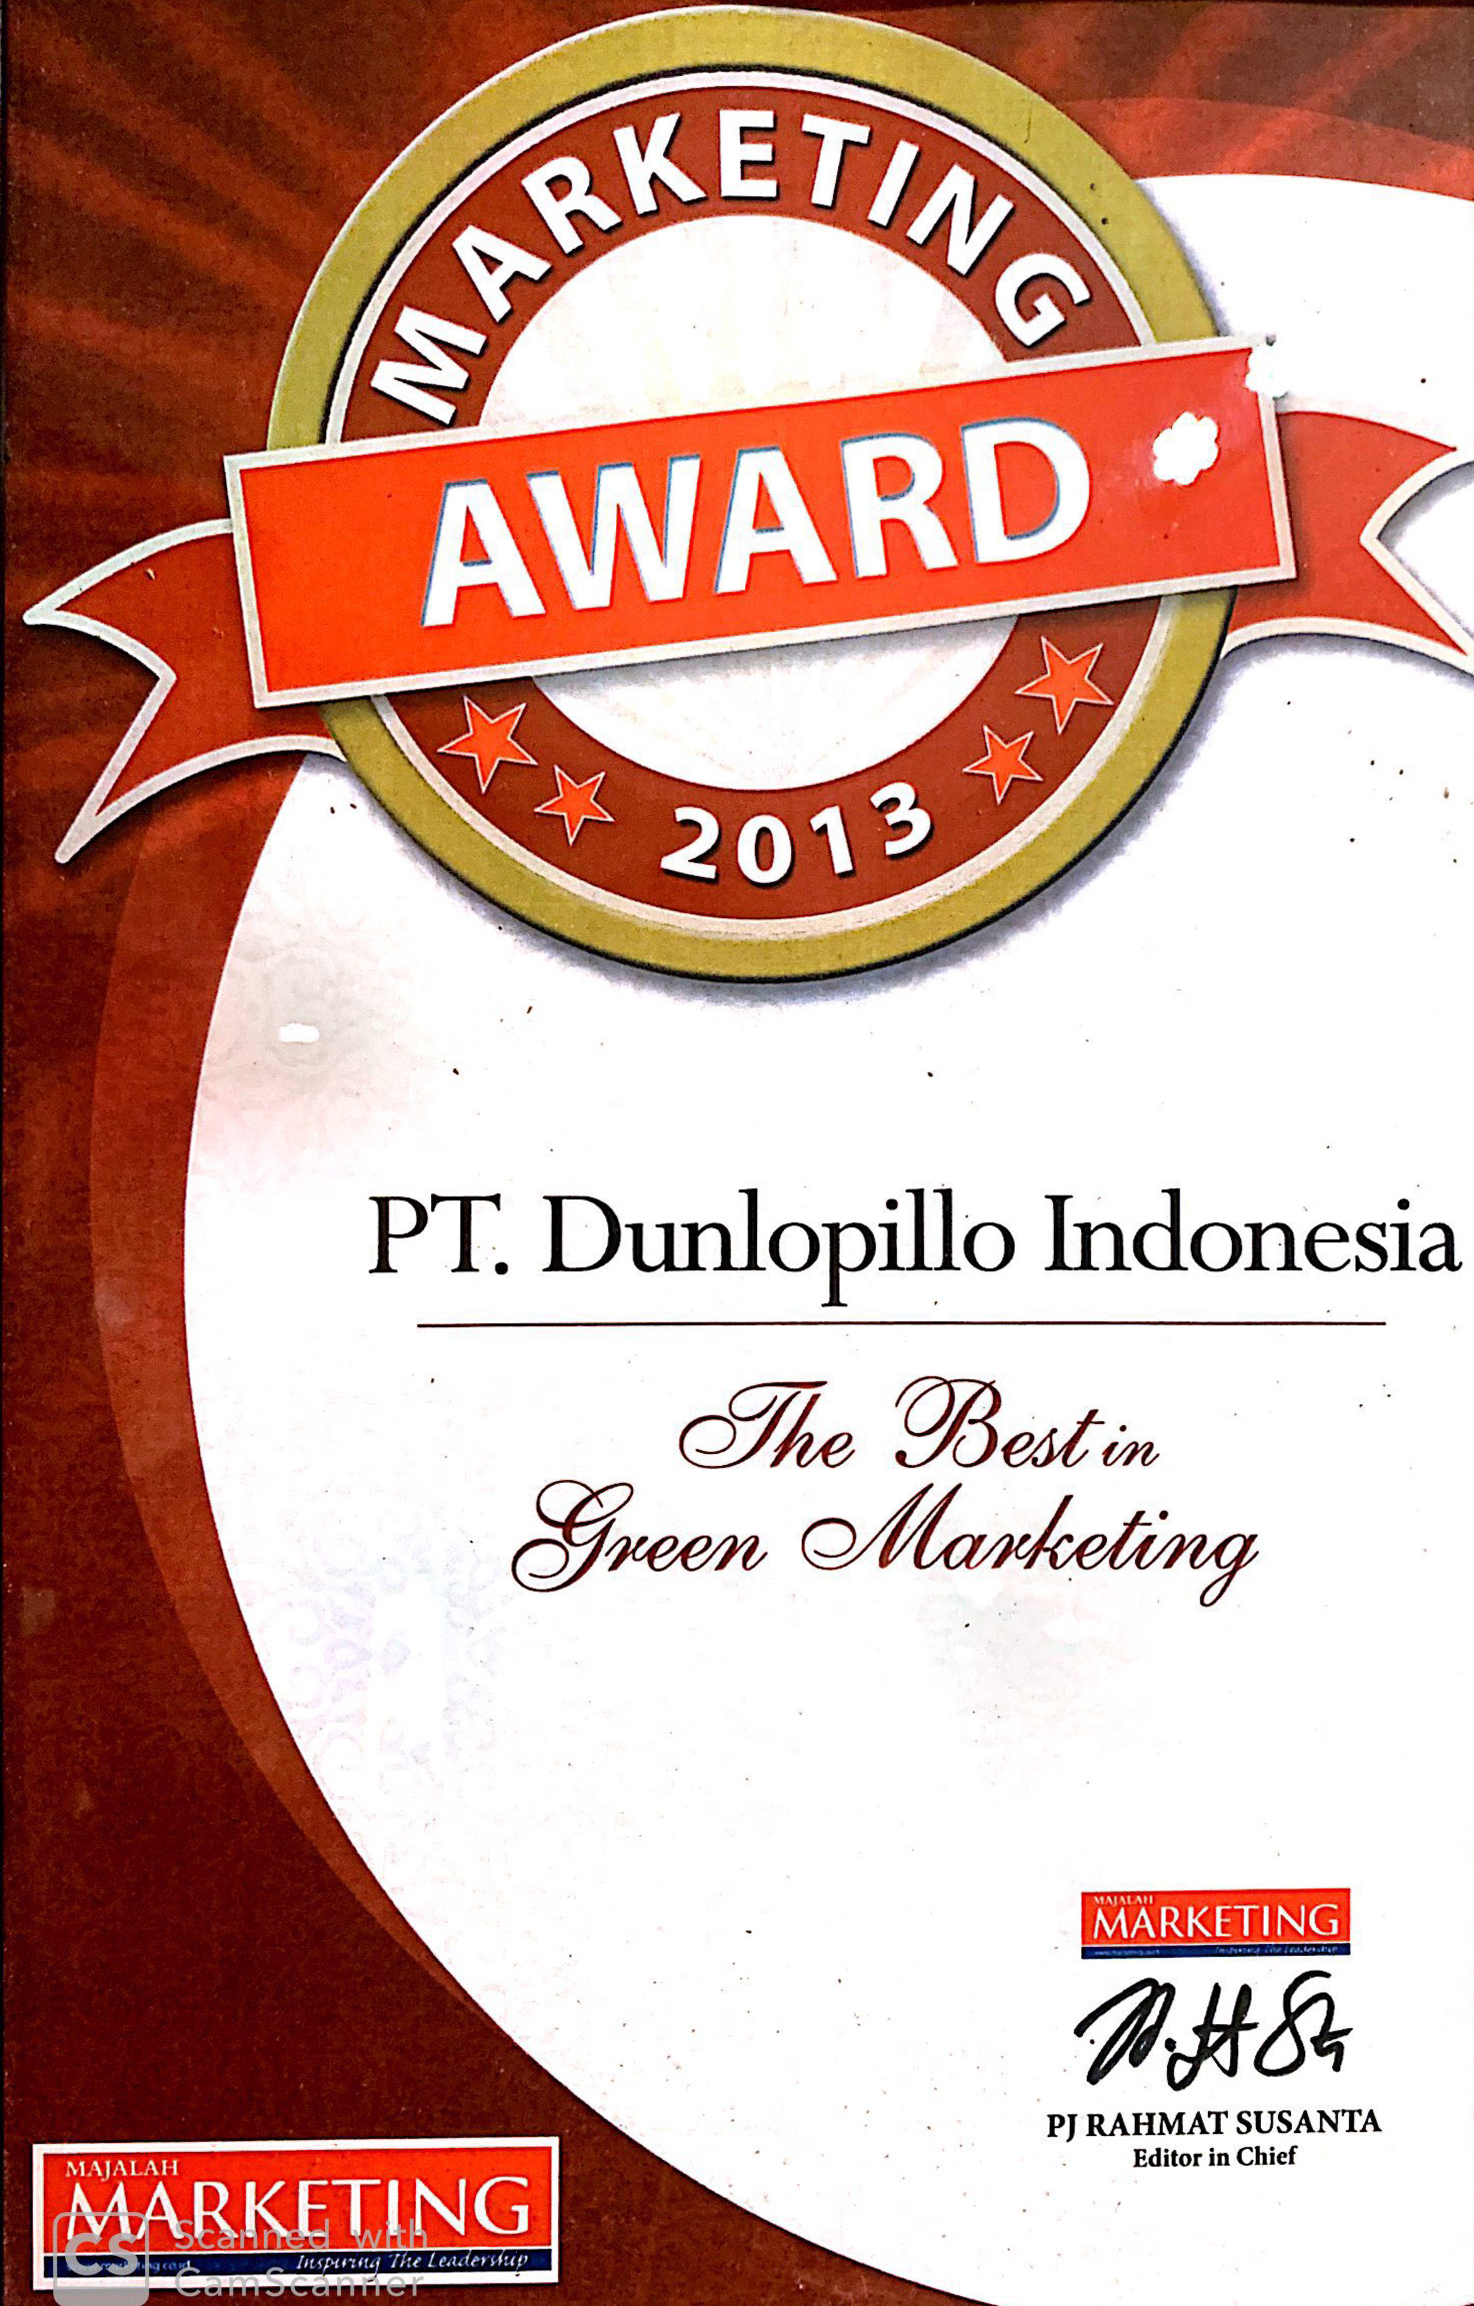 Marketing Award (The best in Green Marketing)